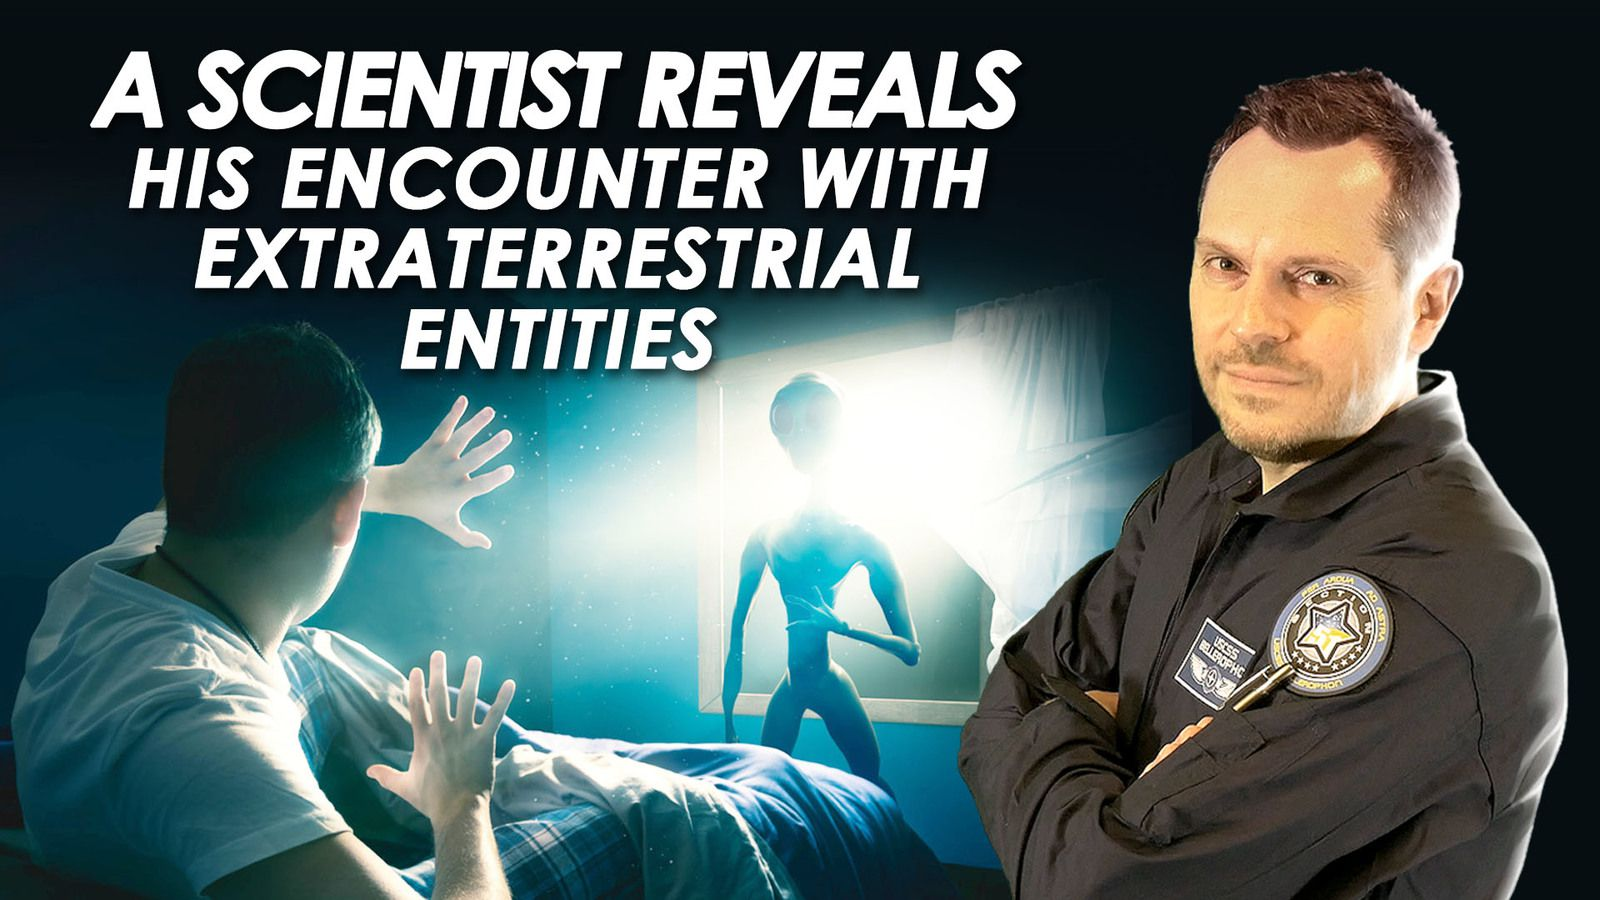 👽 The Scientist Who Revealed His Encounter With Extraterrestrial Entities